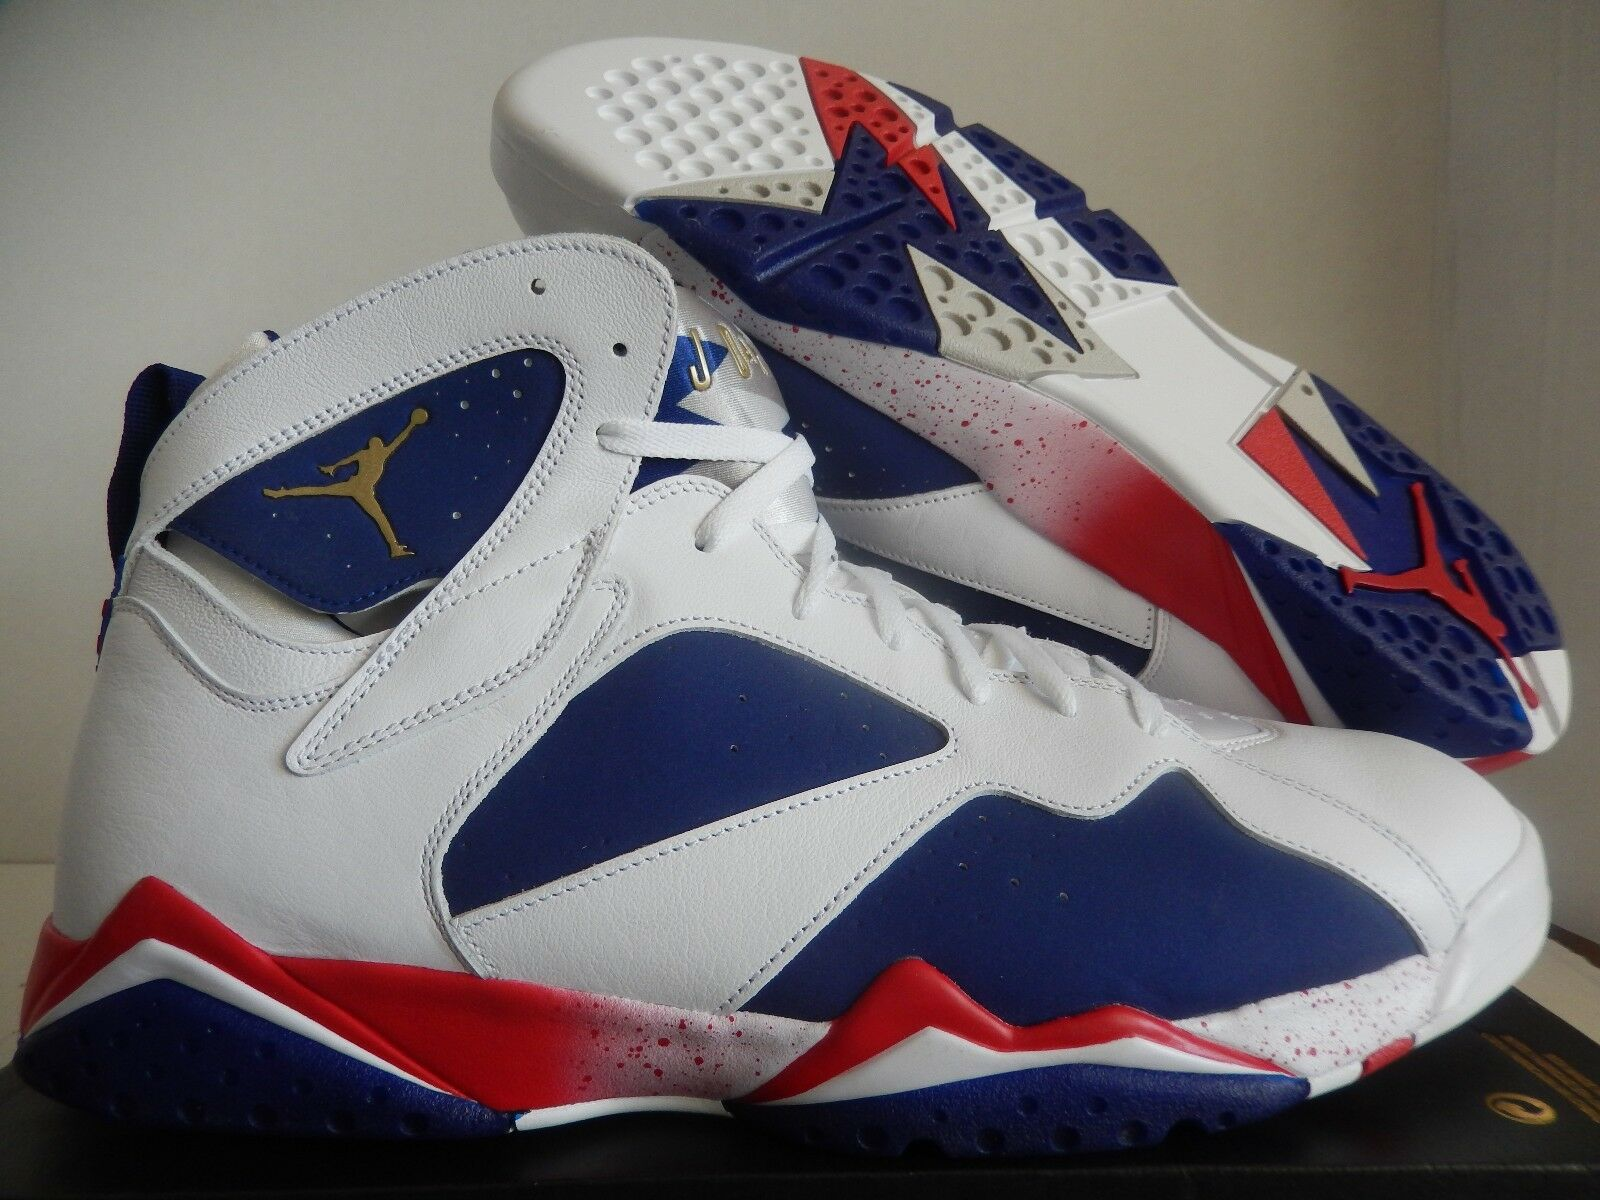 NIKE AIR JORDAN 7 RETRO OLYMPIC TINKER ALTERNATE WHITE-GOLD Price reduction Seasonal price cuts, discount benefits